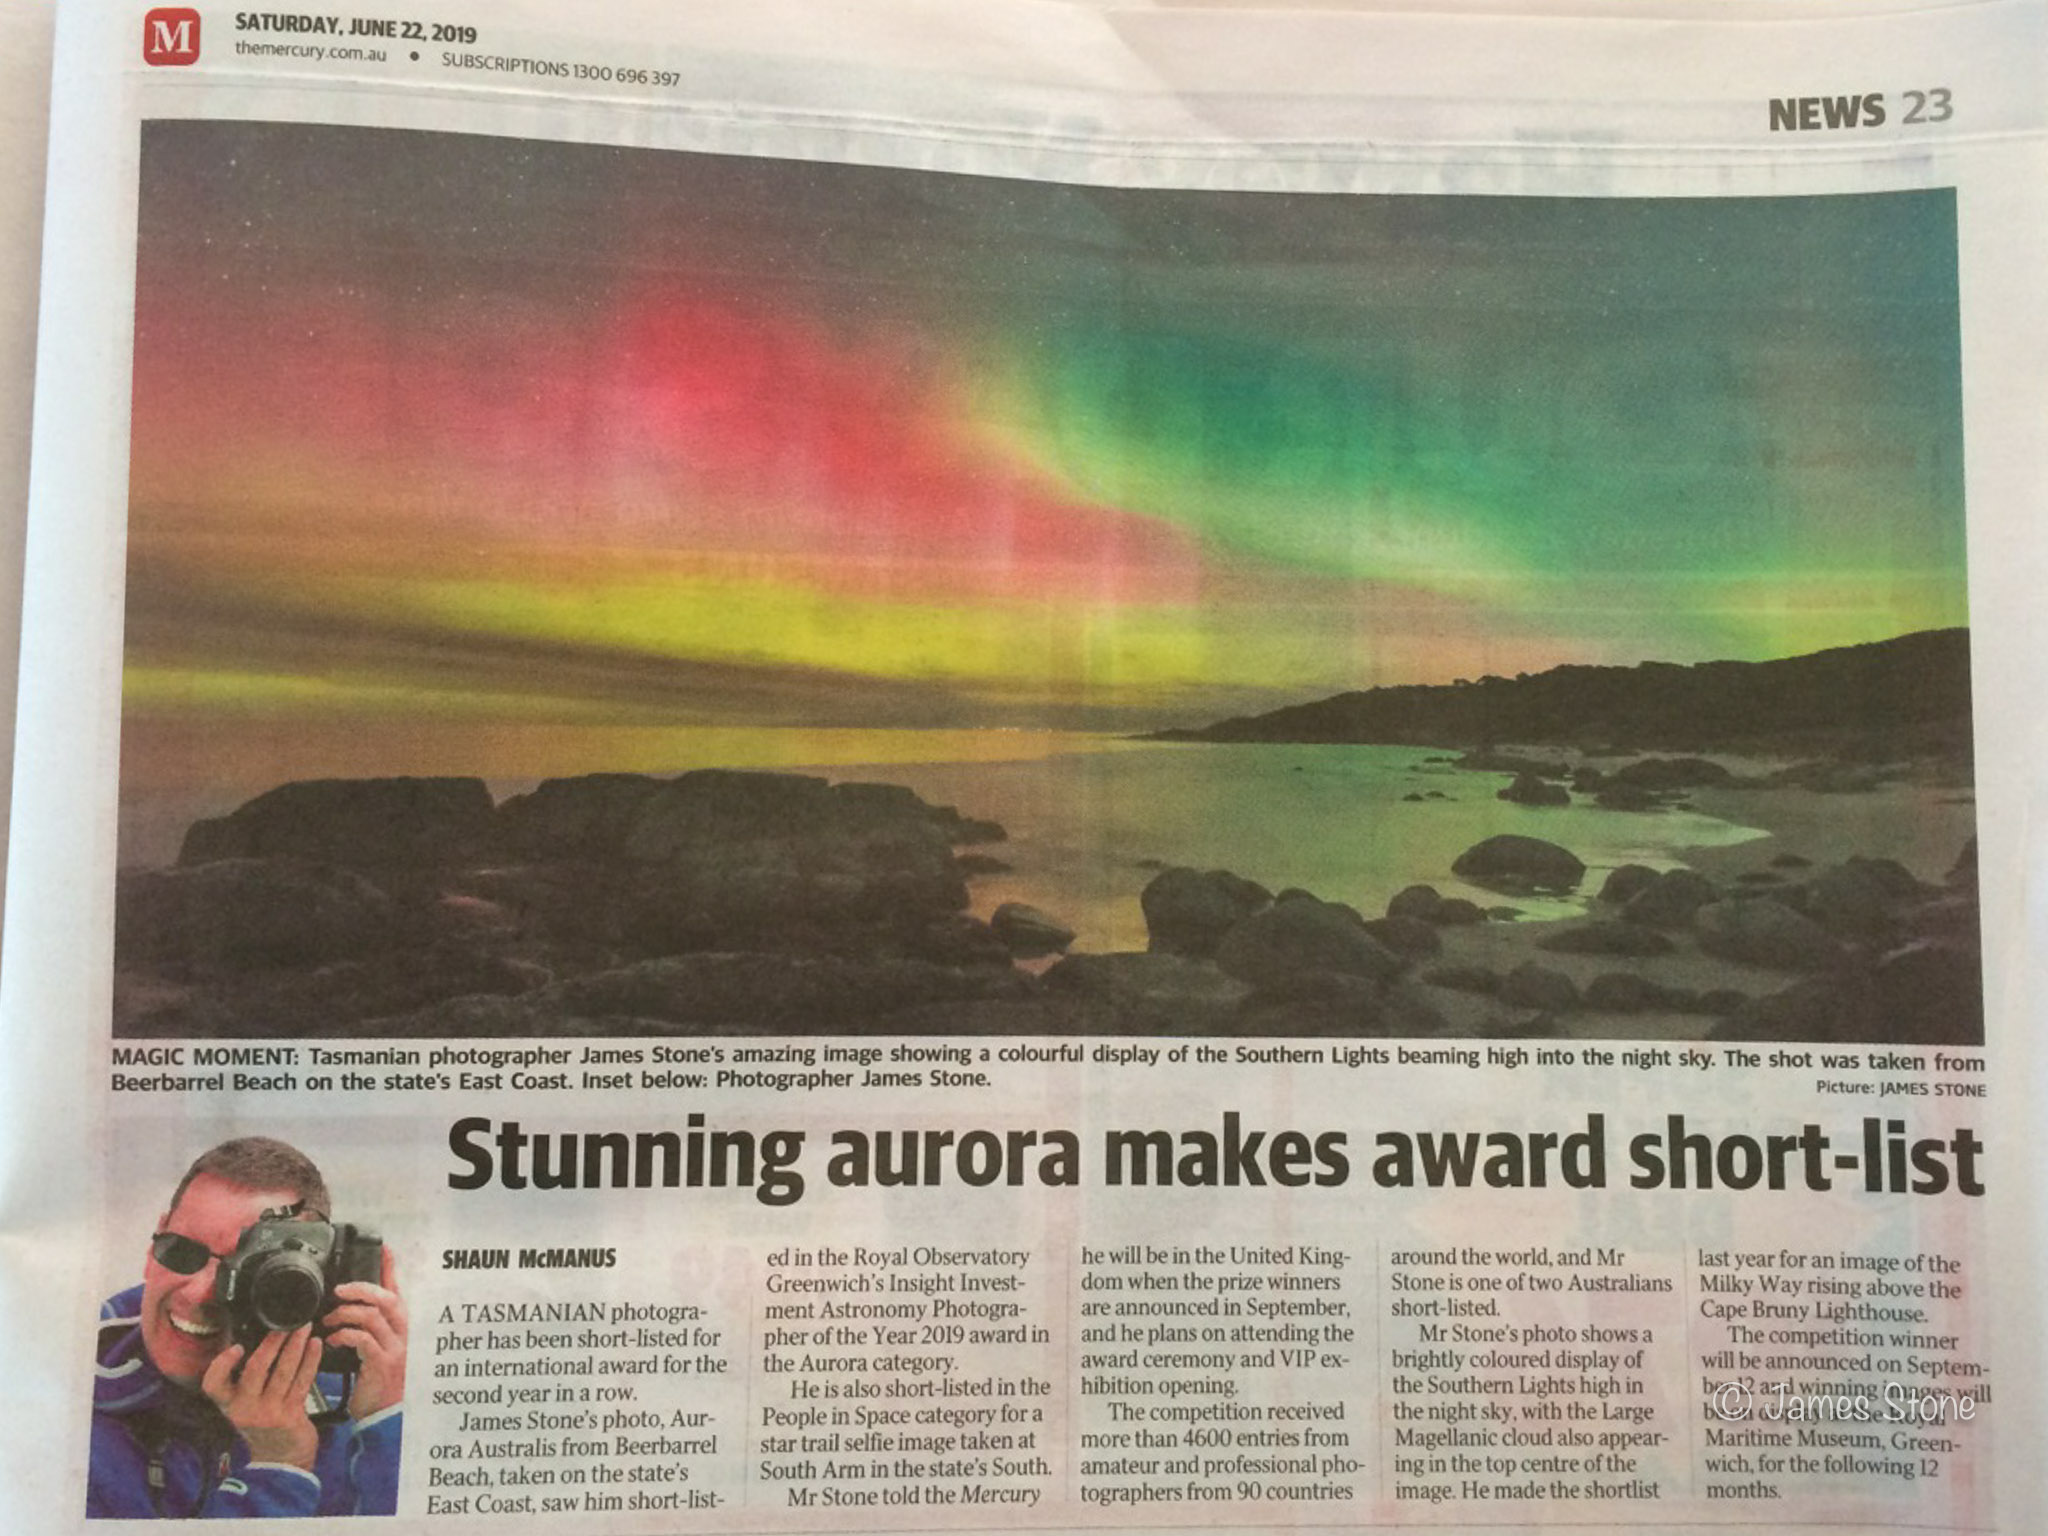 INSIGHT Astronomy Photographer of the Year article, June 2019.